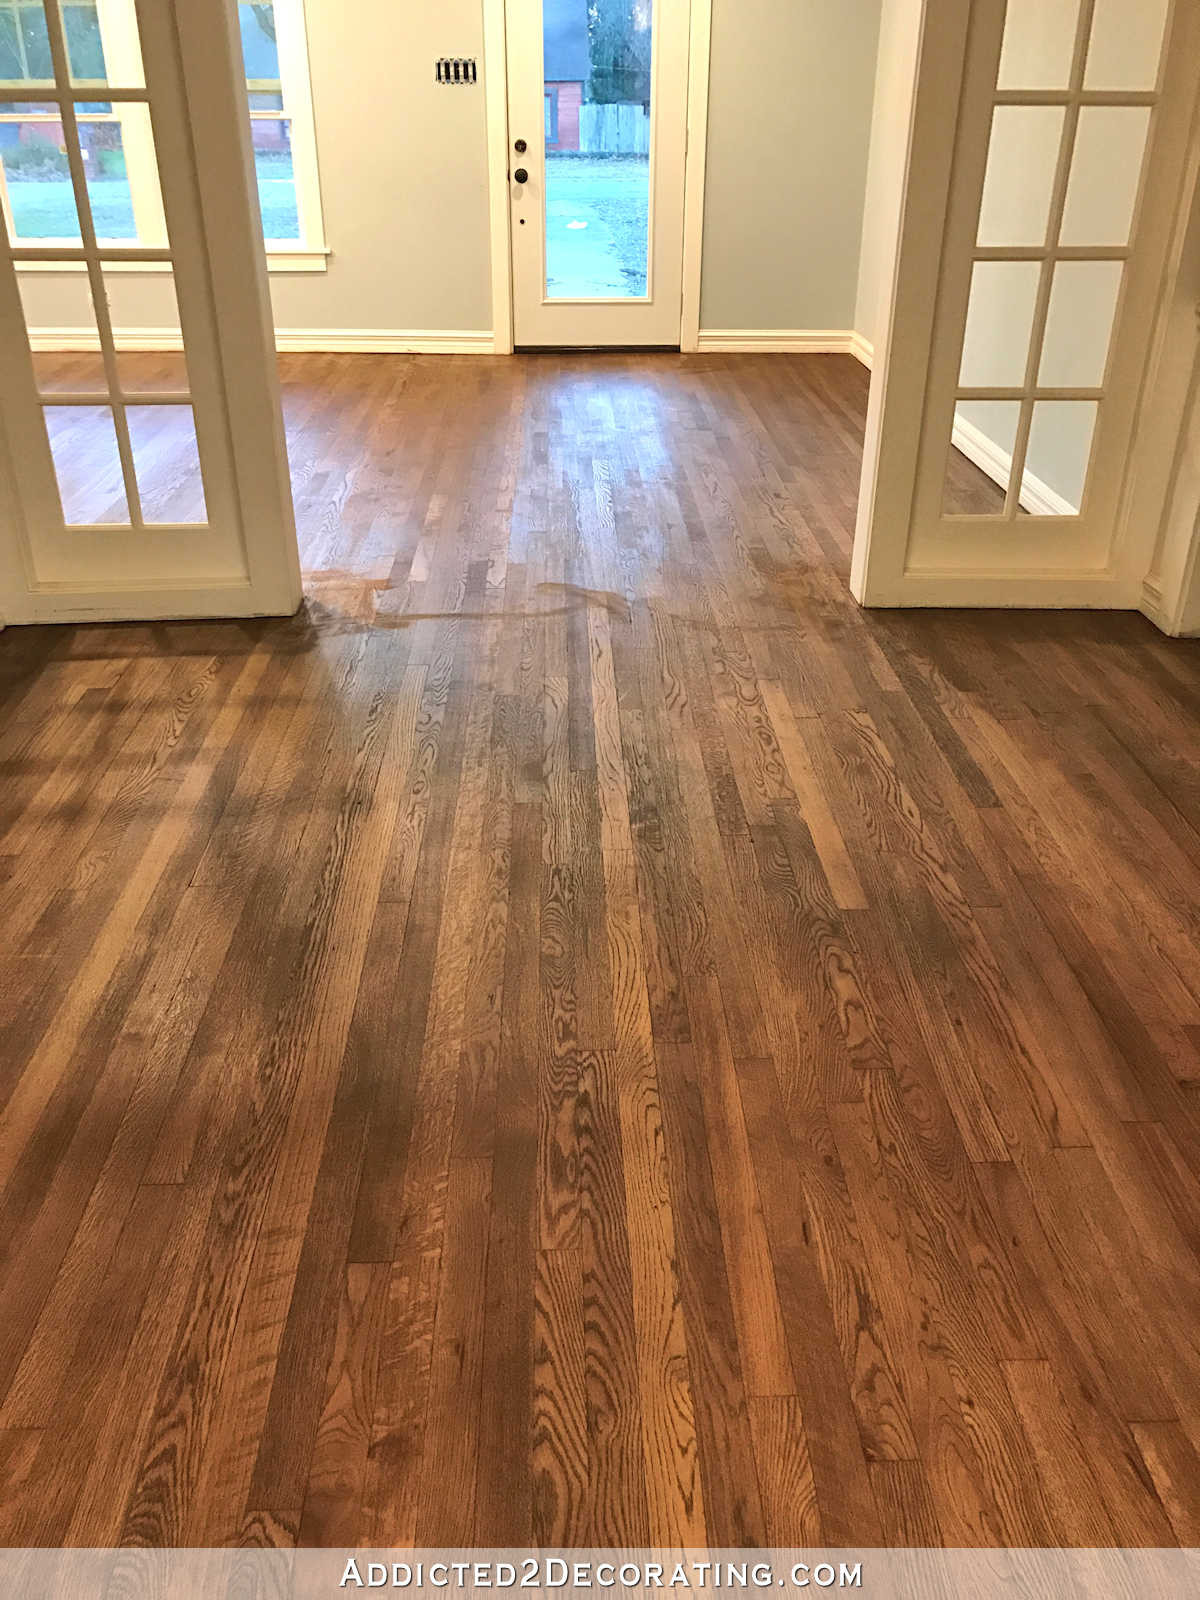 redoing hardwood floors old house of adventures in staining my red oak hardwood floors products process intended for staining red oak hardwood floors 9 stain on entryway and music room floors